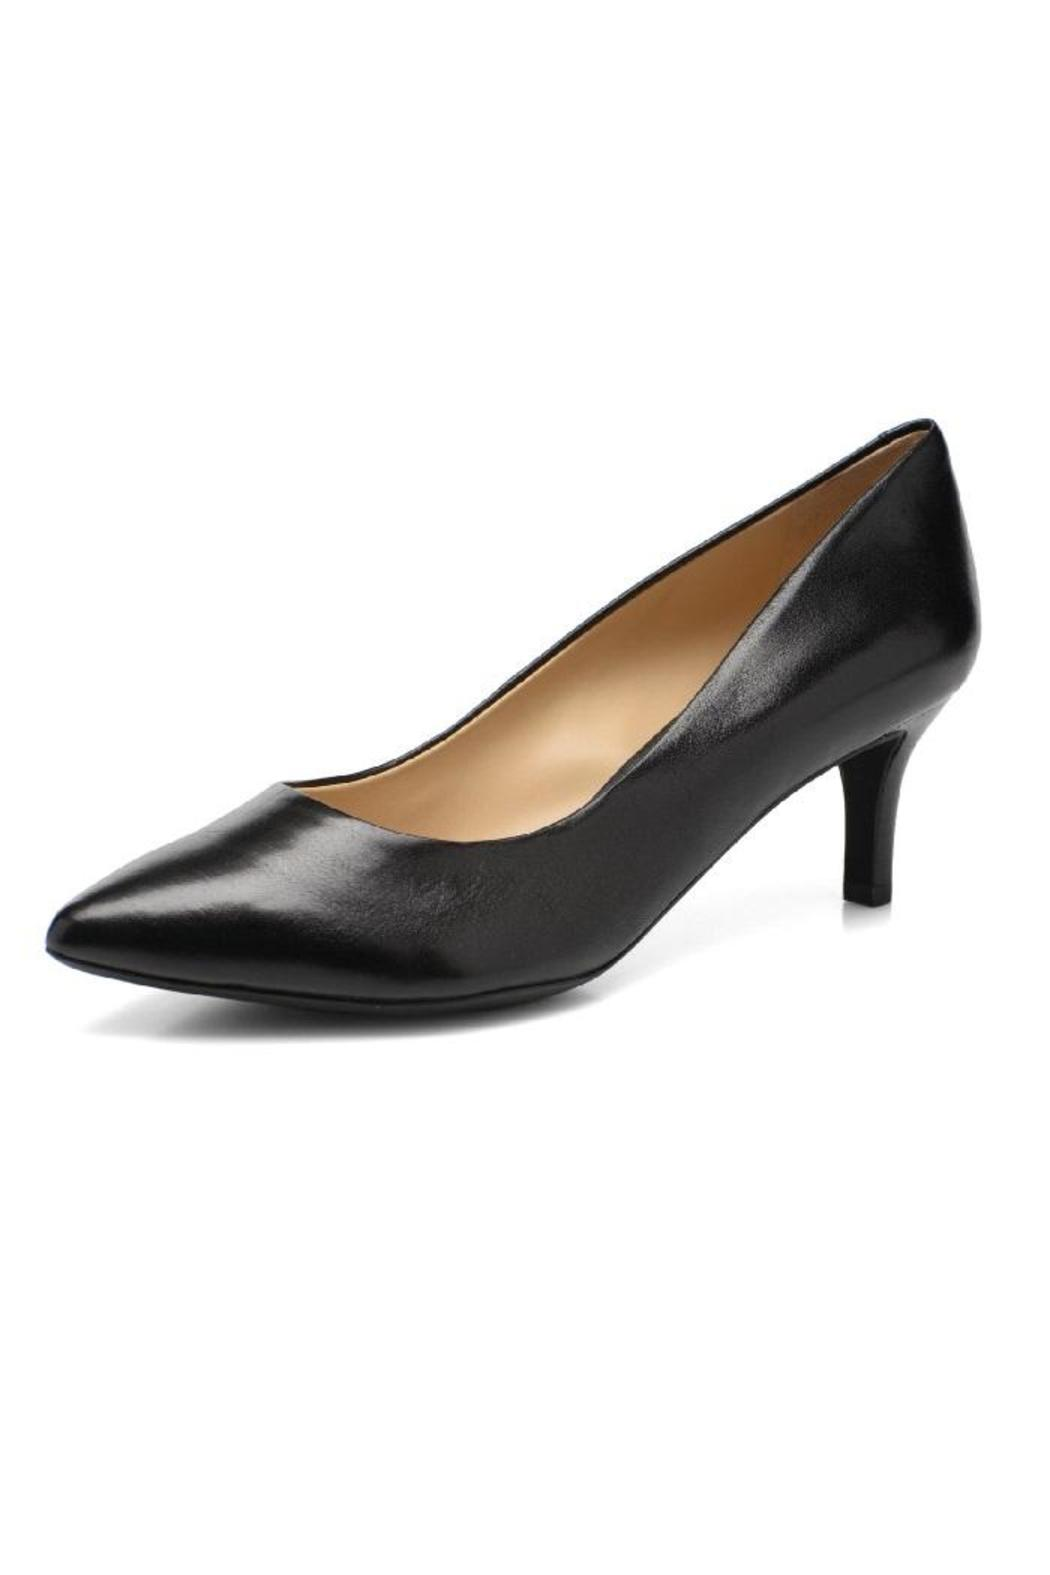 Geox Kitten Heel from Canada by Modern Sole — Shoptiques